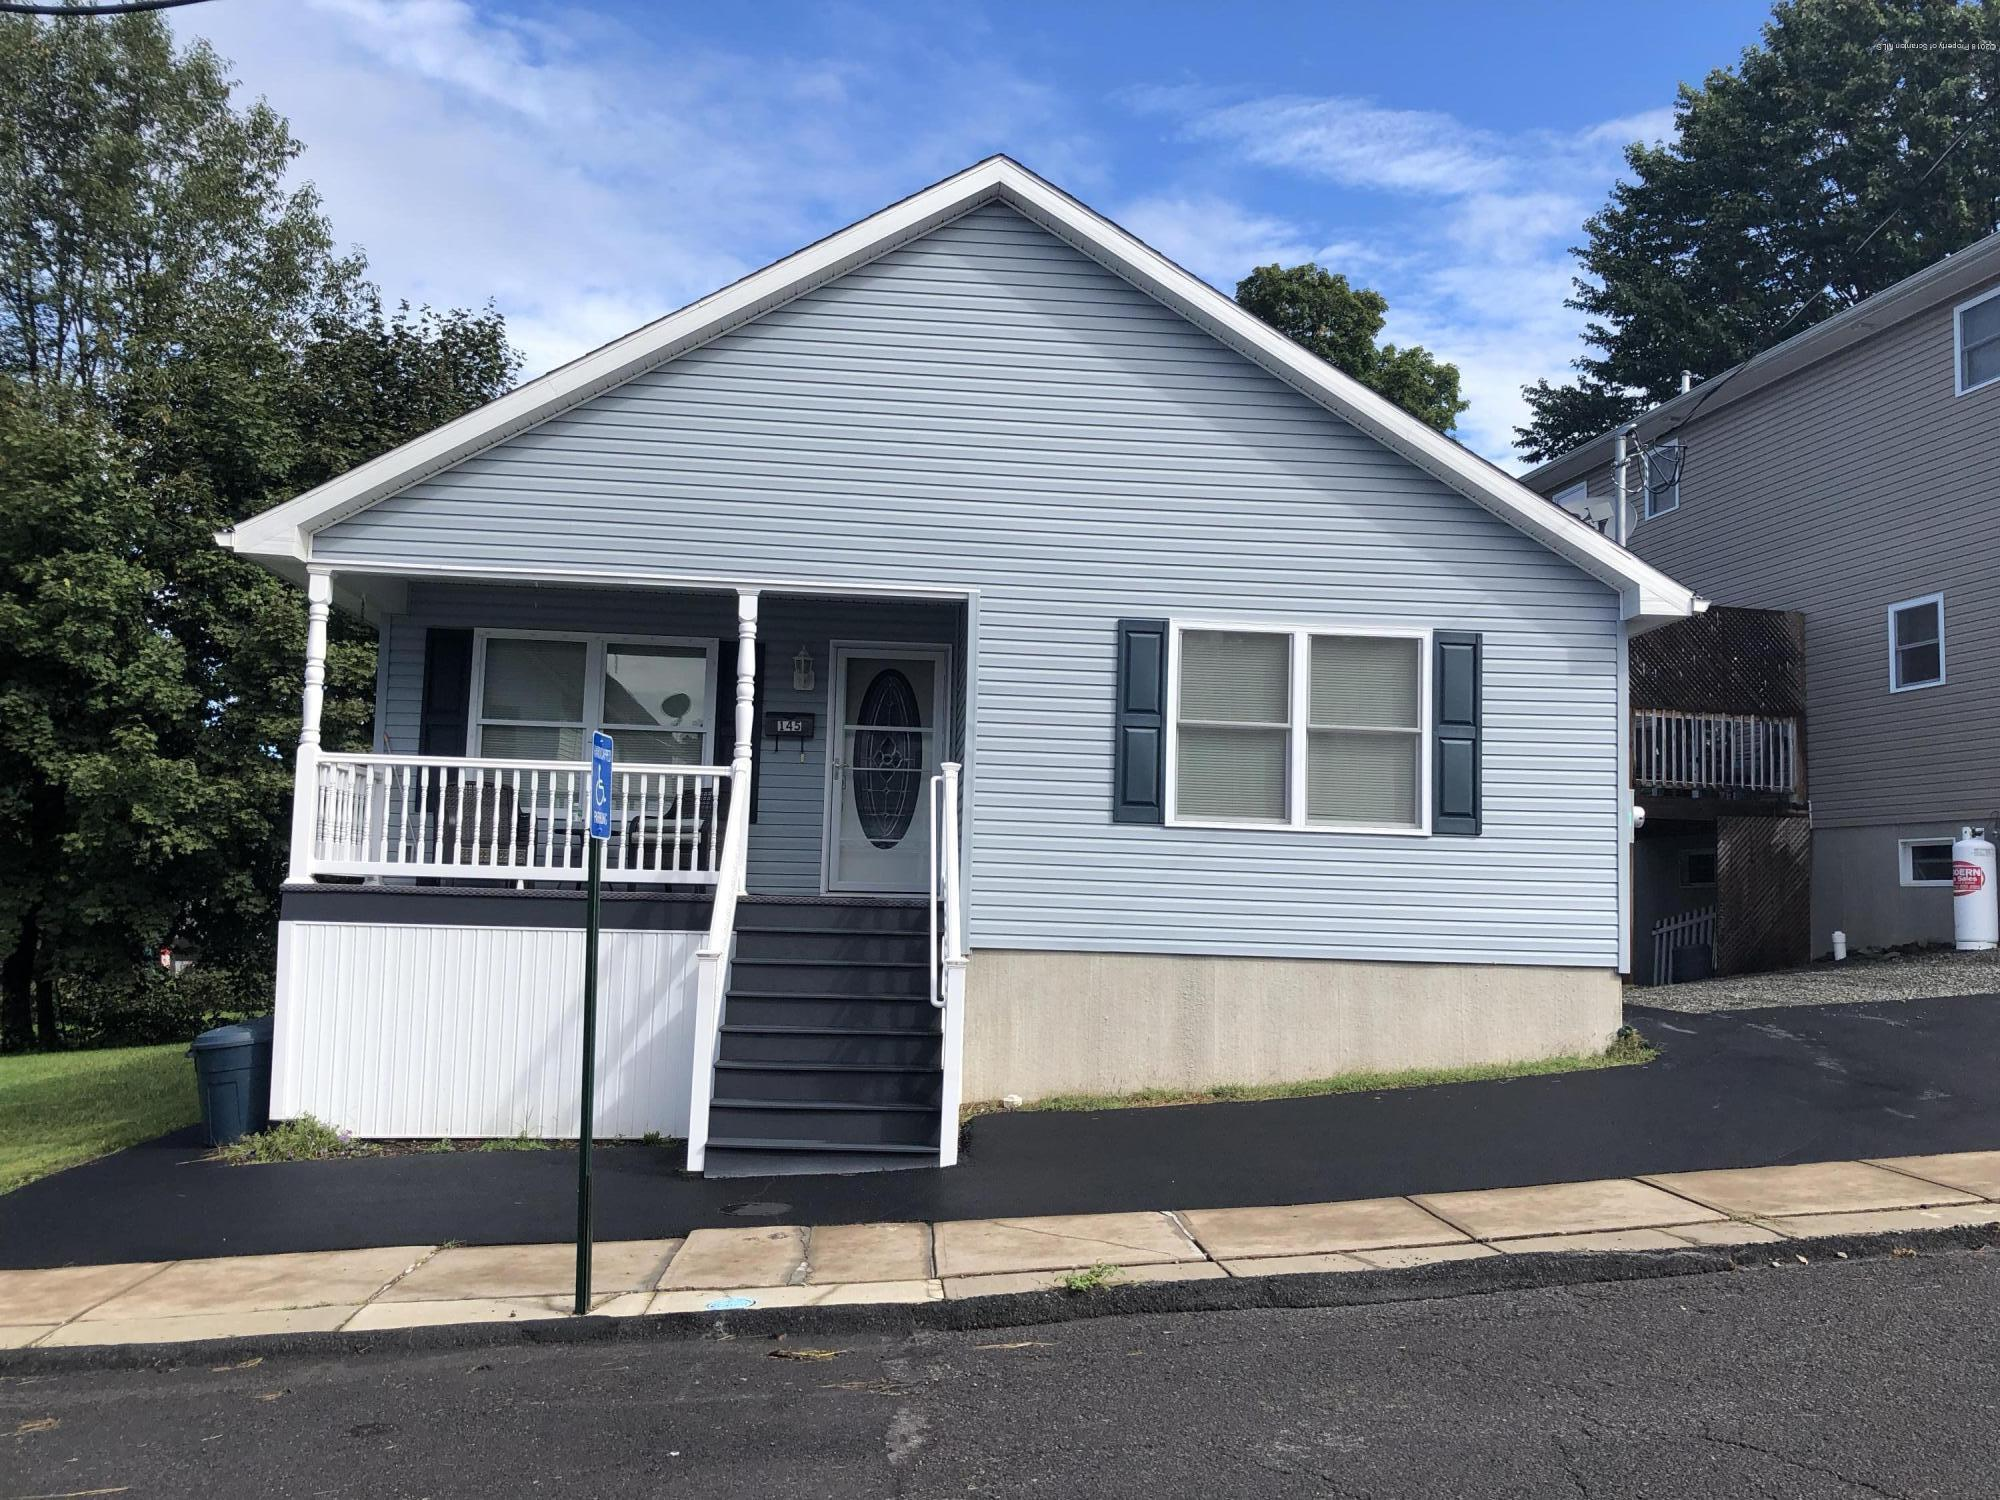 145 8th Ave, Carbondale, Pennsylvania 18407, 2 Bedrooms Bedrooms, 4 Rooms Rooms,2 BathroomsBathrooms,Single Family,For Sale,8th,18-4491